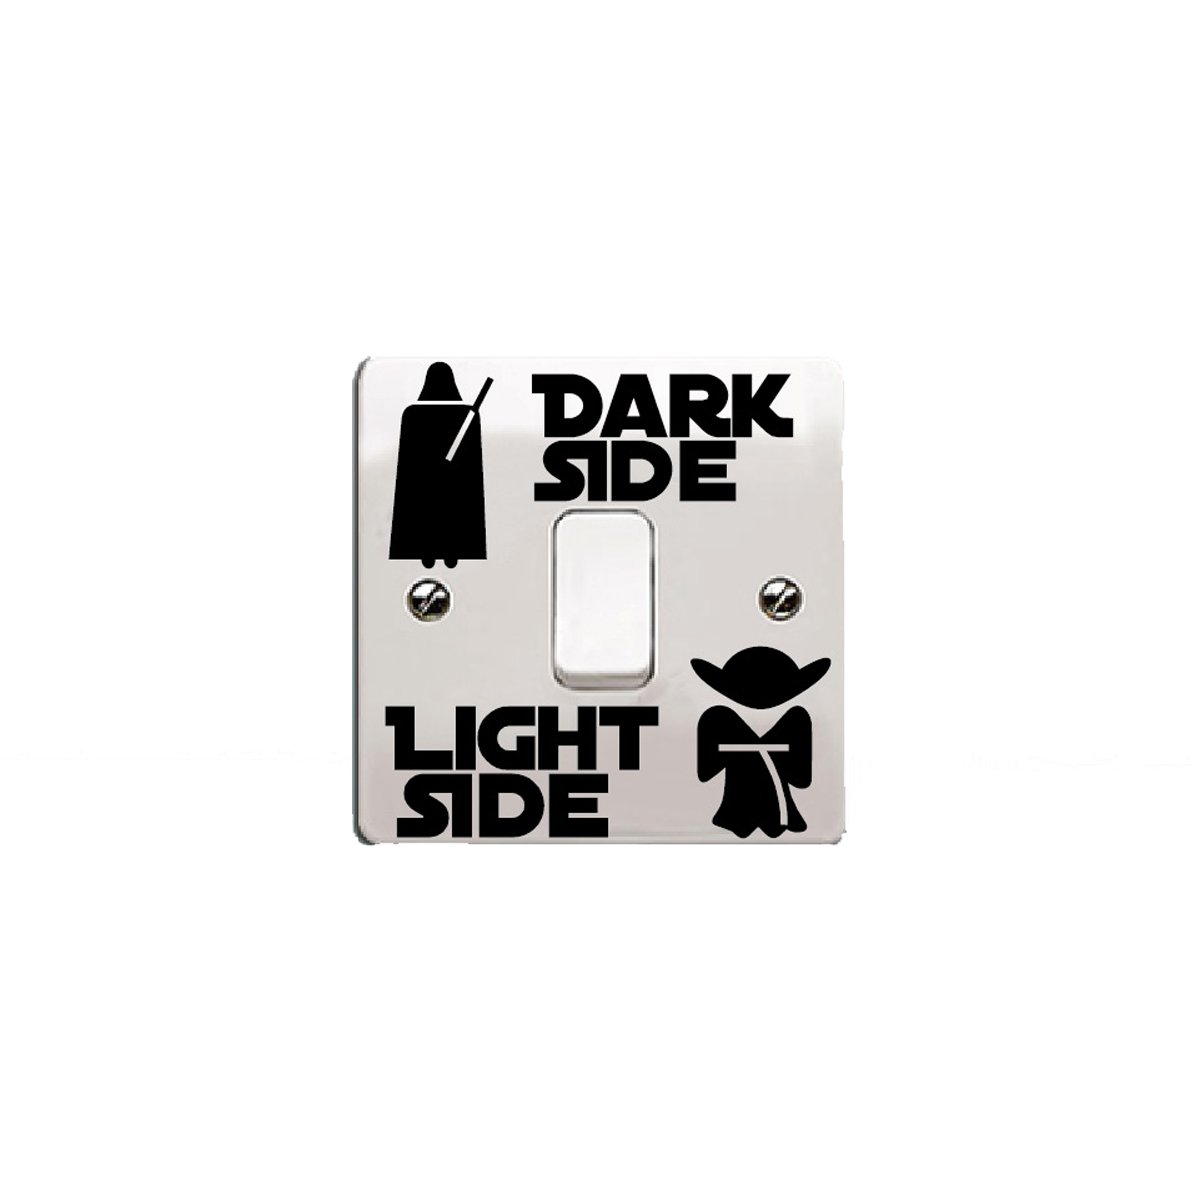 'Star Wars de vinilo etiqueta/Calcomanía Dark Side – Light Side para interruptor de luz Rosa Talla:Style 1 .